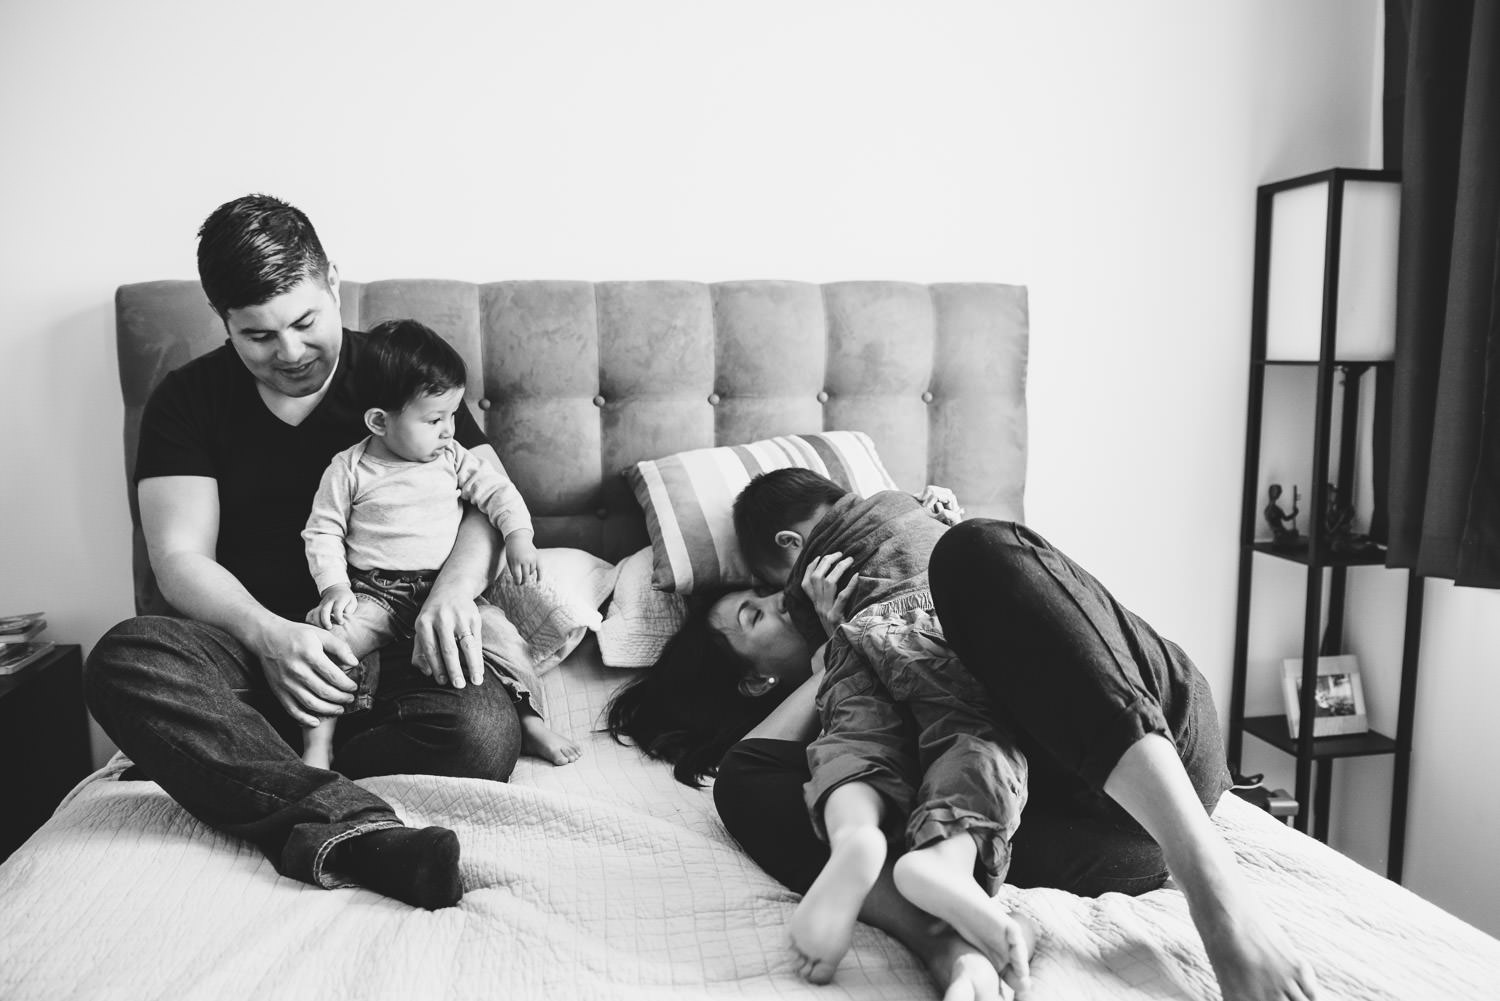 A family cuddles in bed.